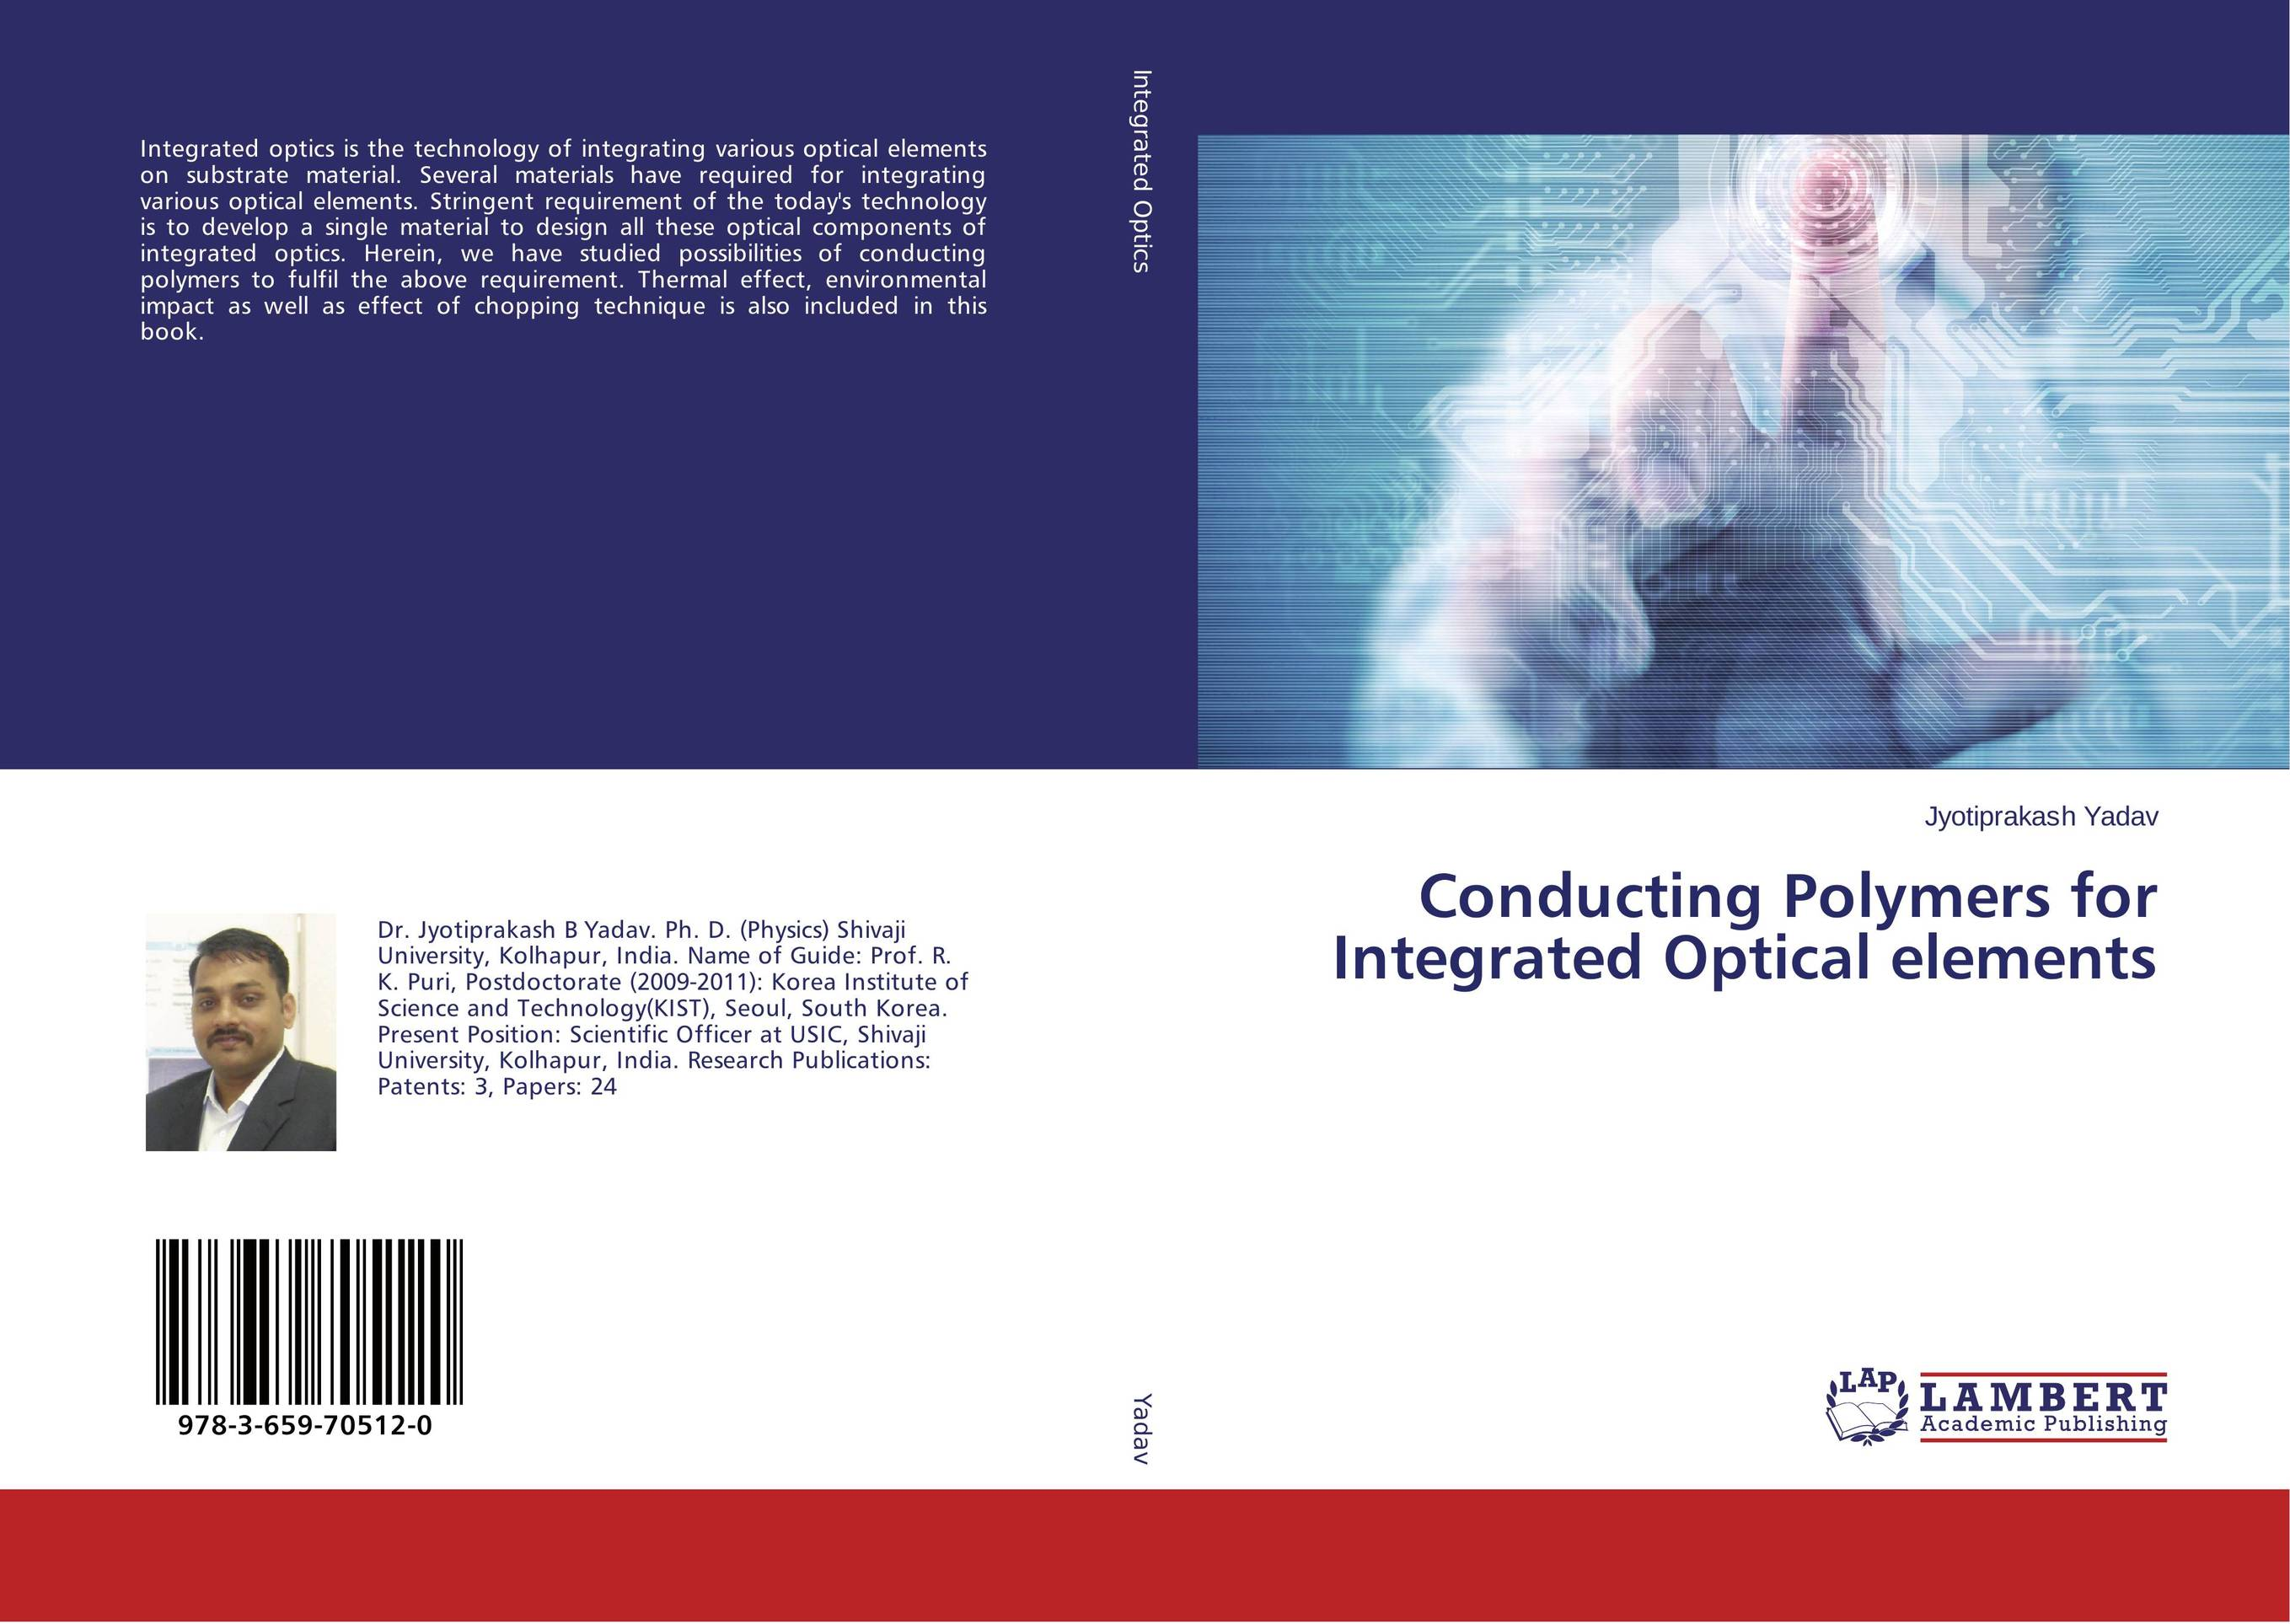 Conducting Polymers for Integrated Optical elements